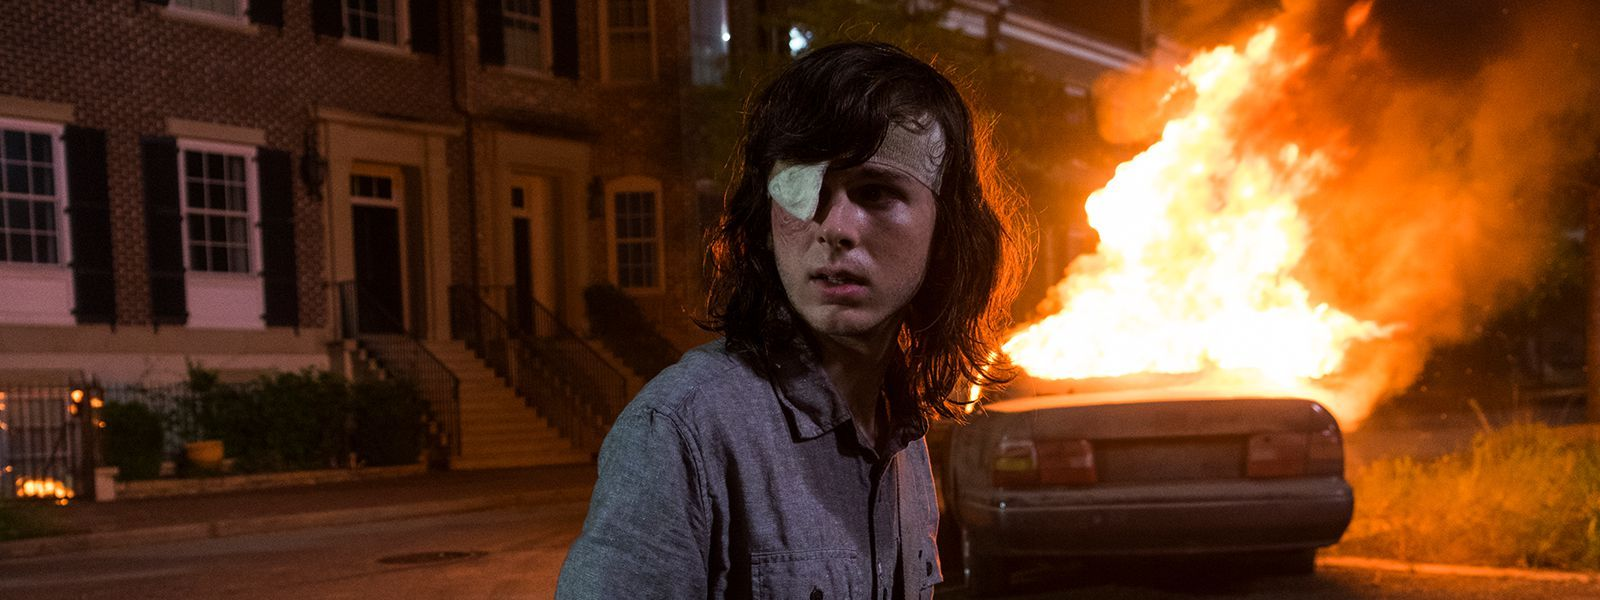 the-walking-dead-episode-808-carl-riggs-post-800×600